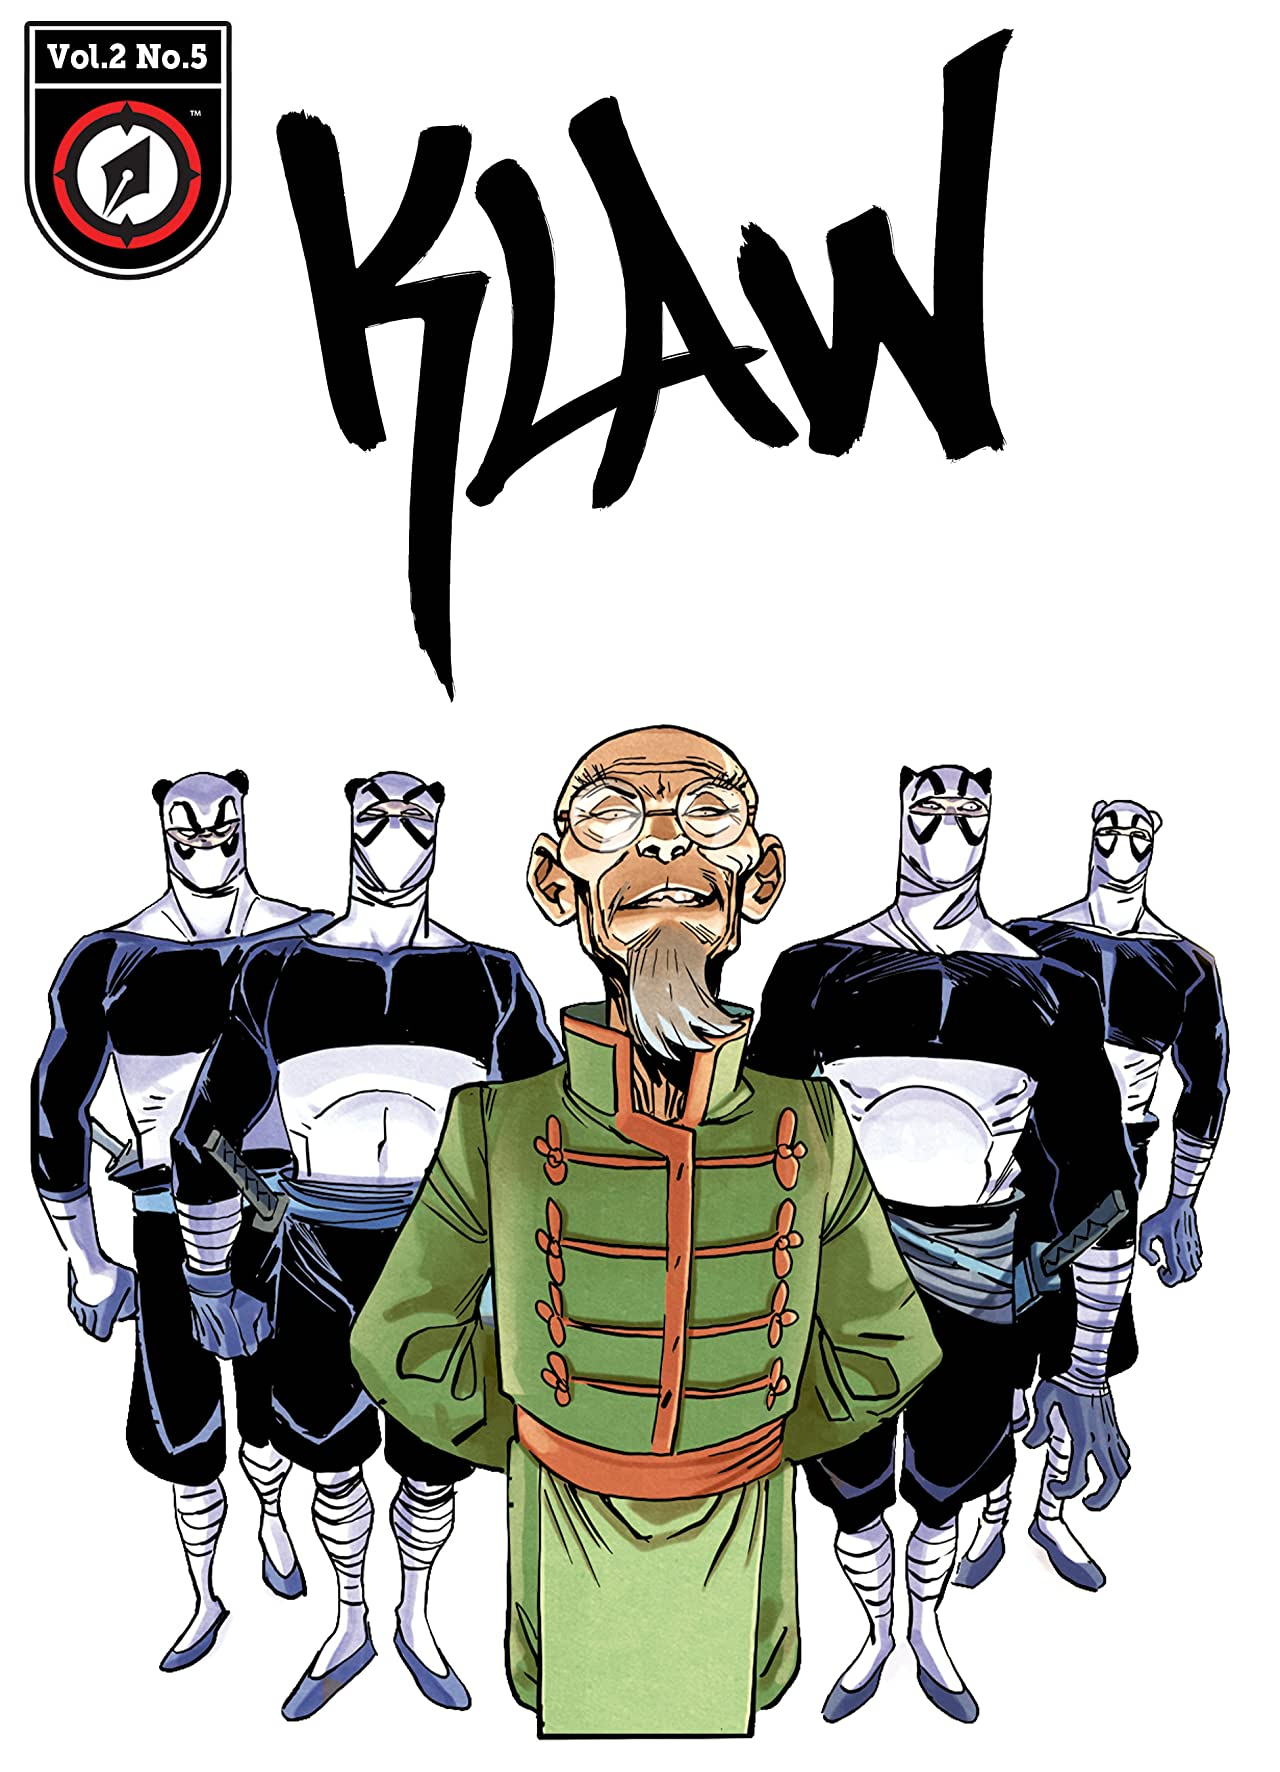 KLAW Vol. 2 #11: The Forgotten